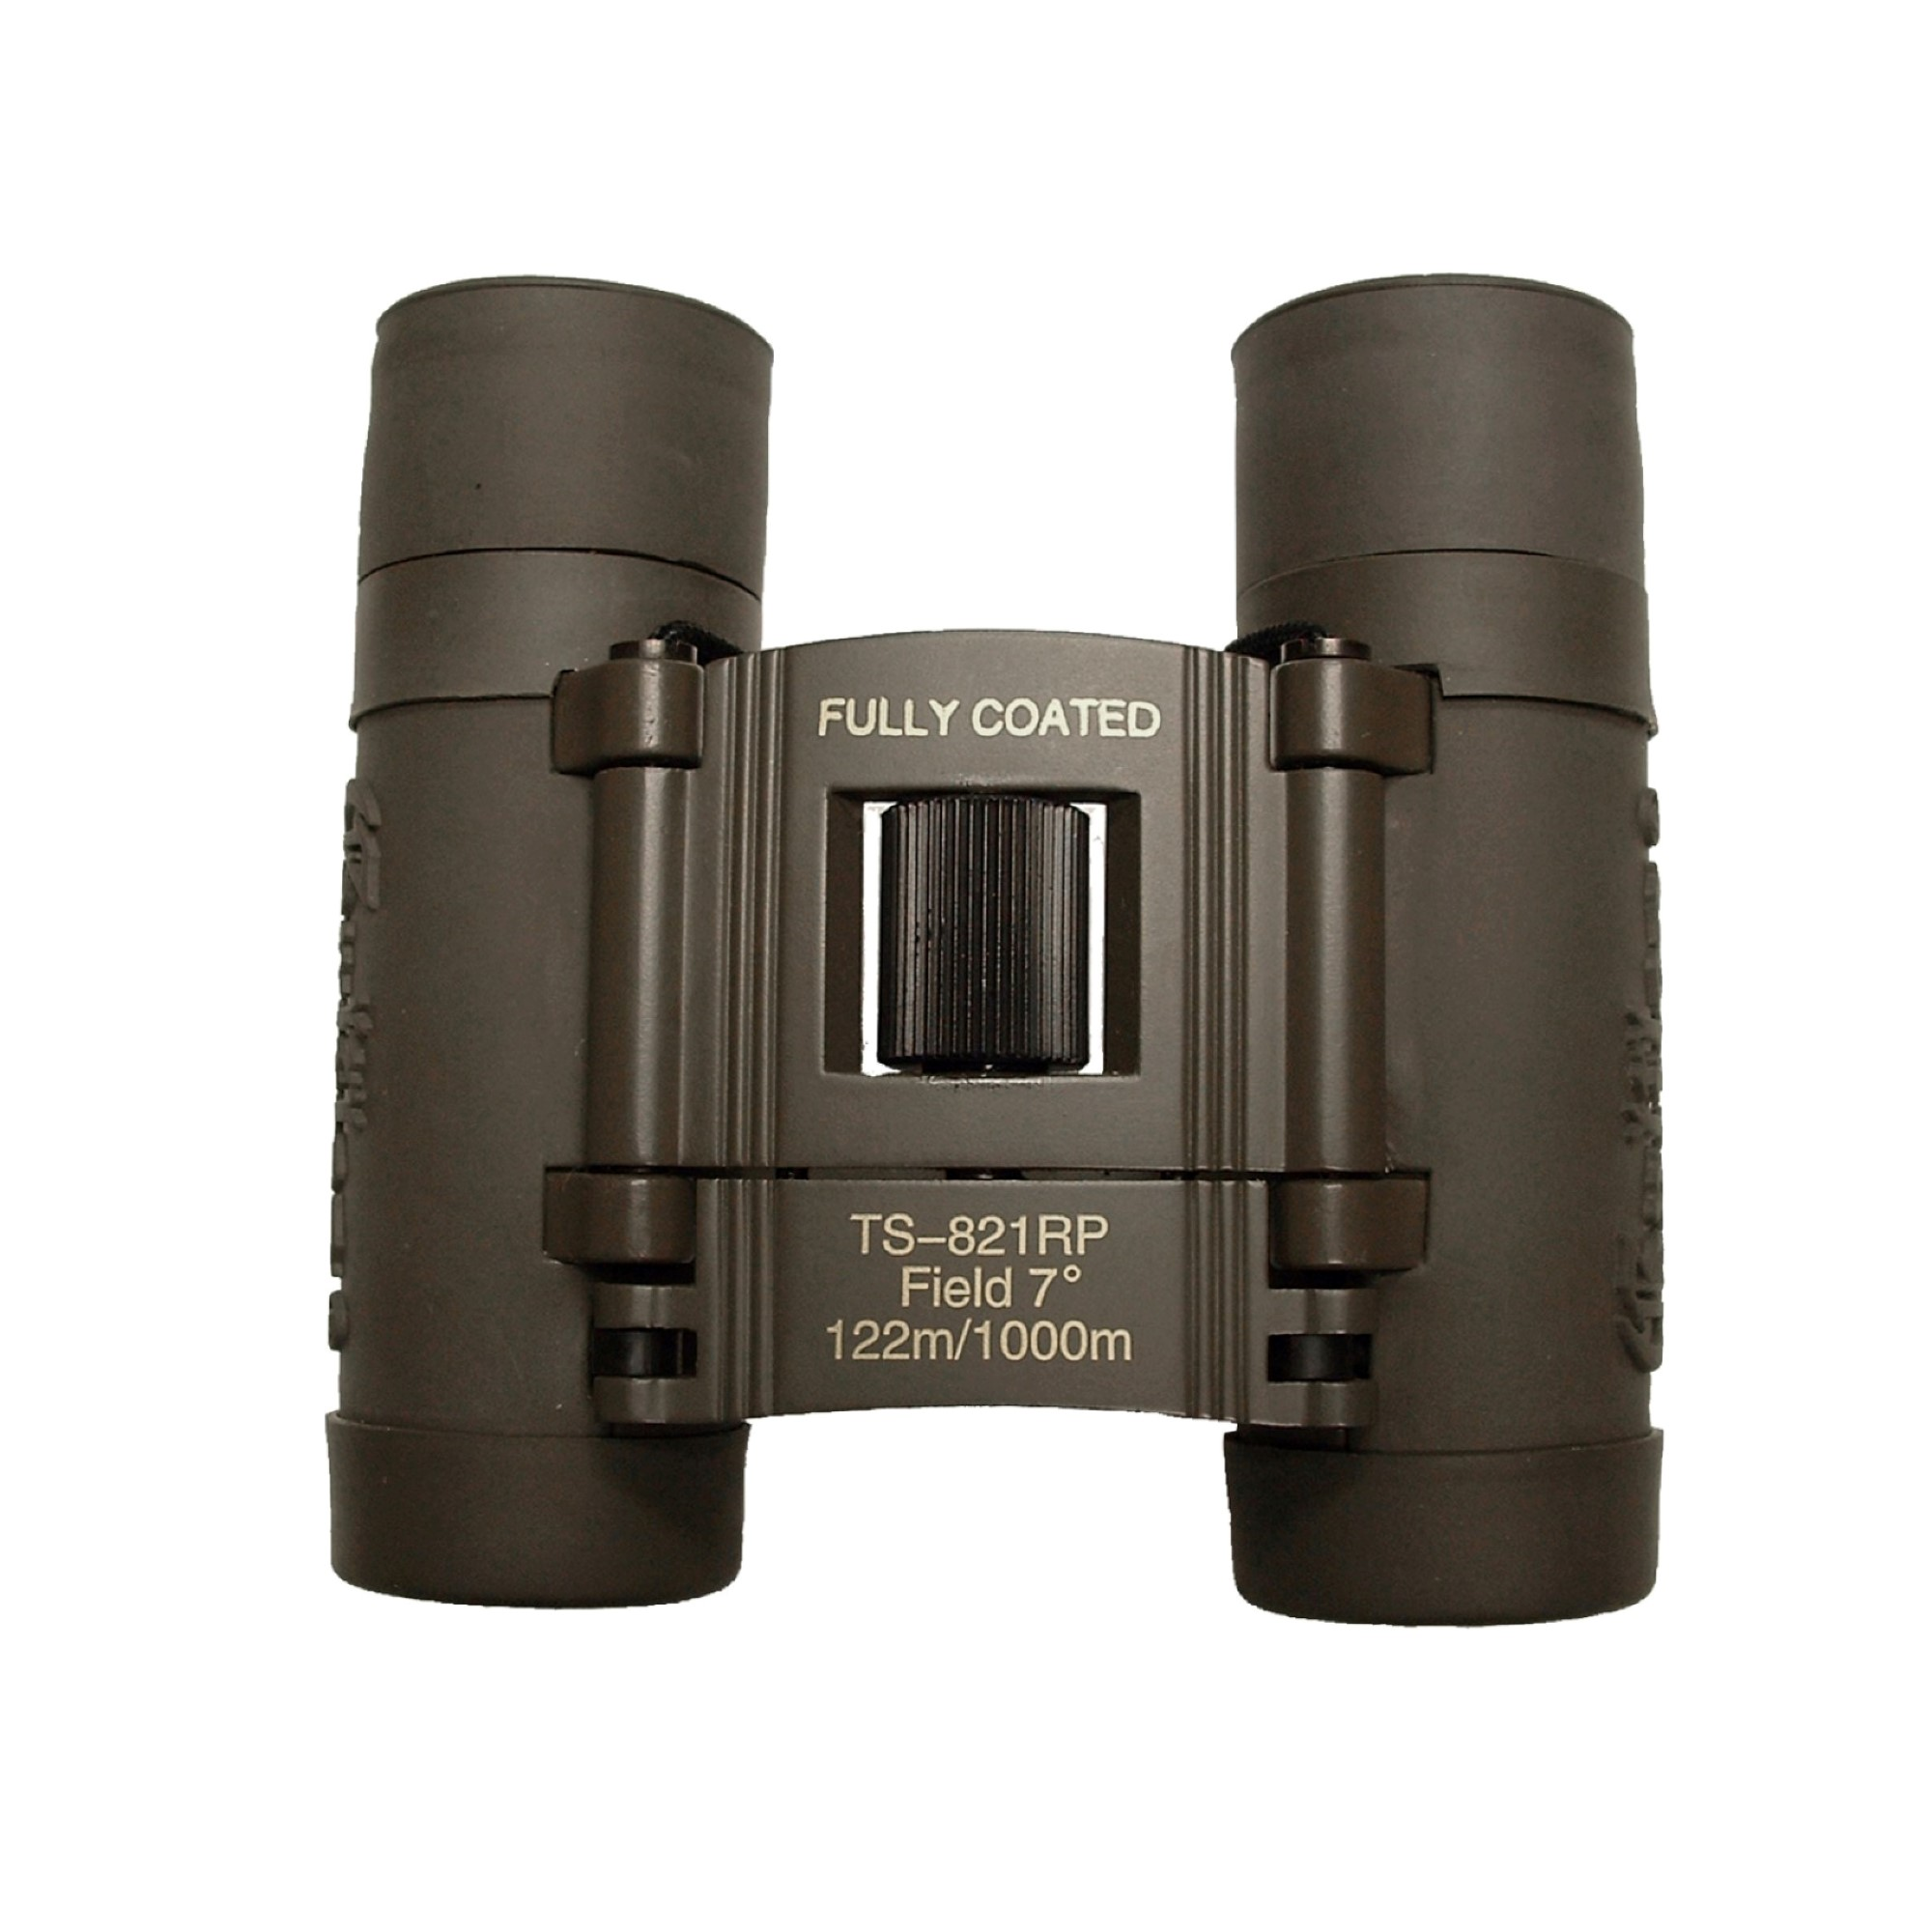 Galileo 8 x 21mm embossed Compact Binocular opens wide and narrow to bring image 10x closer. Case included